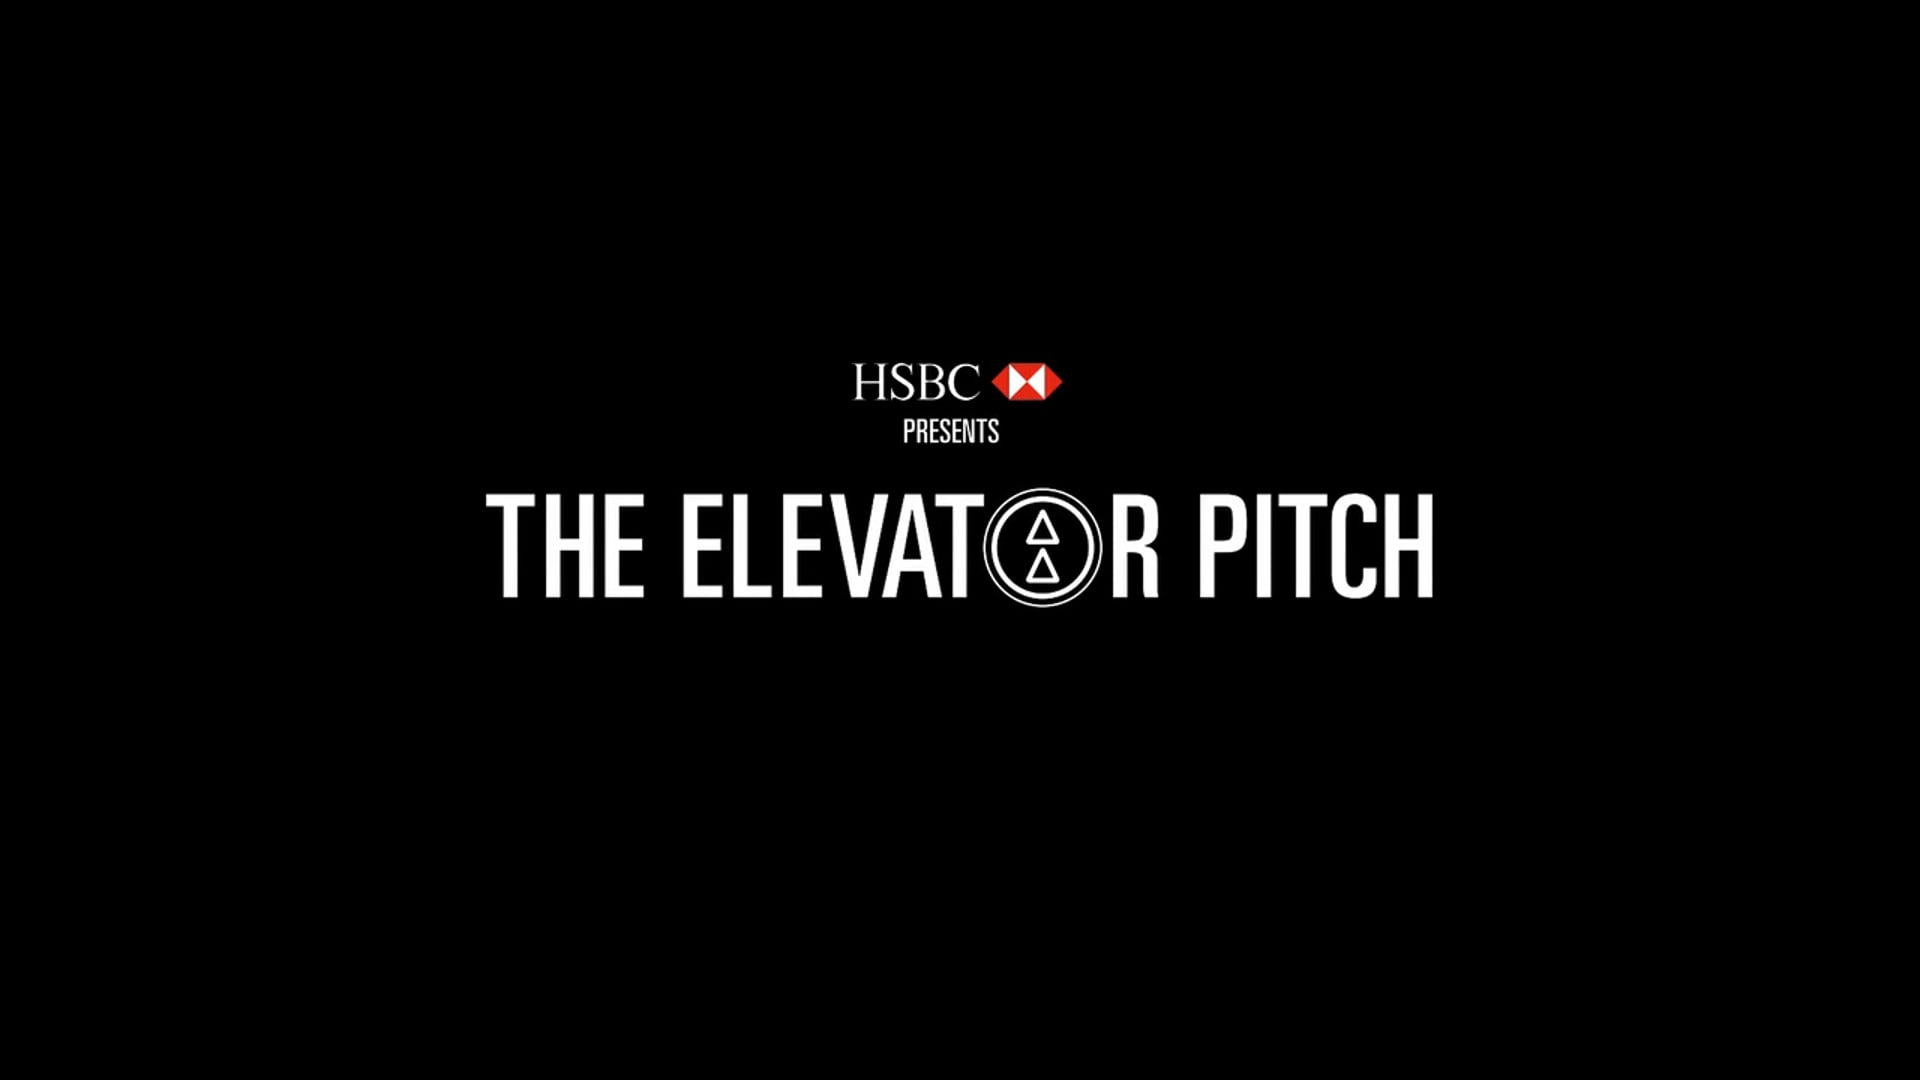 HSBC 'The Elevator Pitch' Commercial